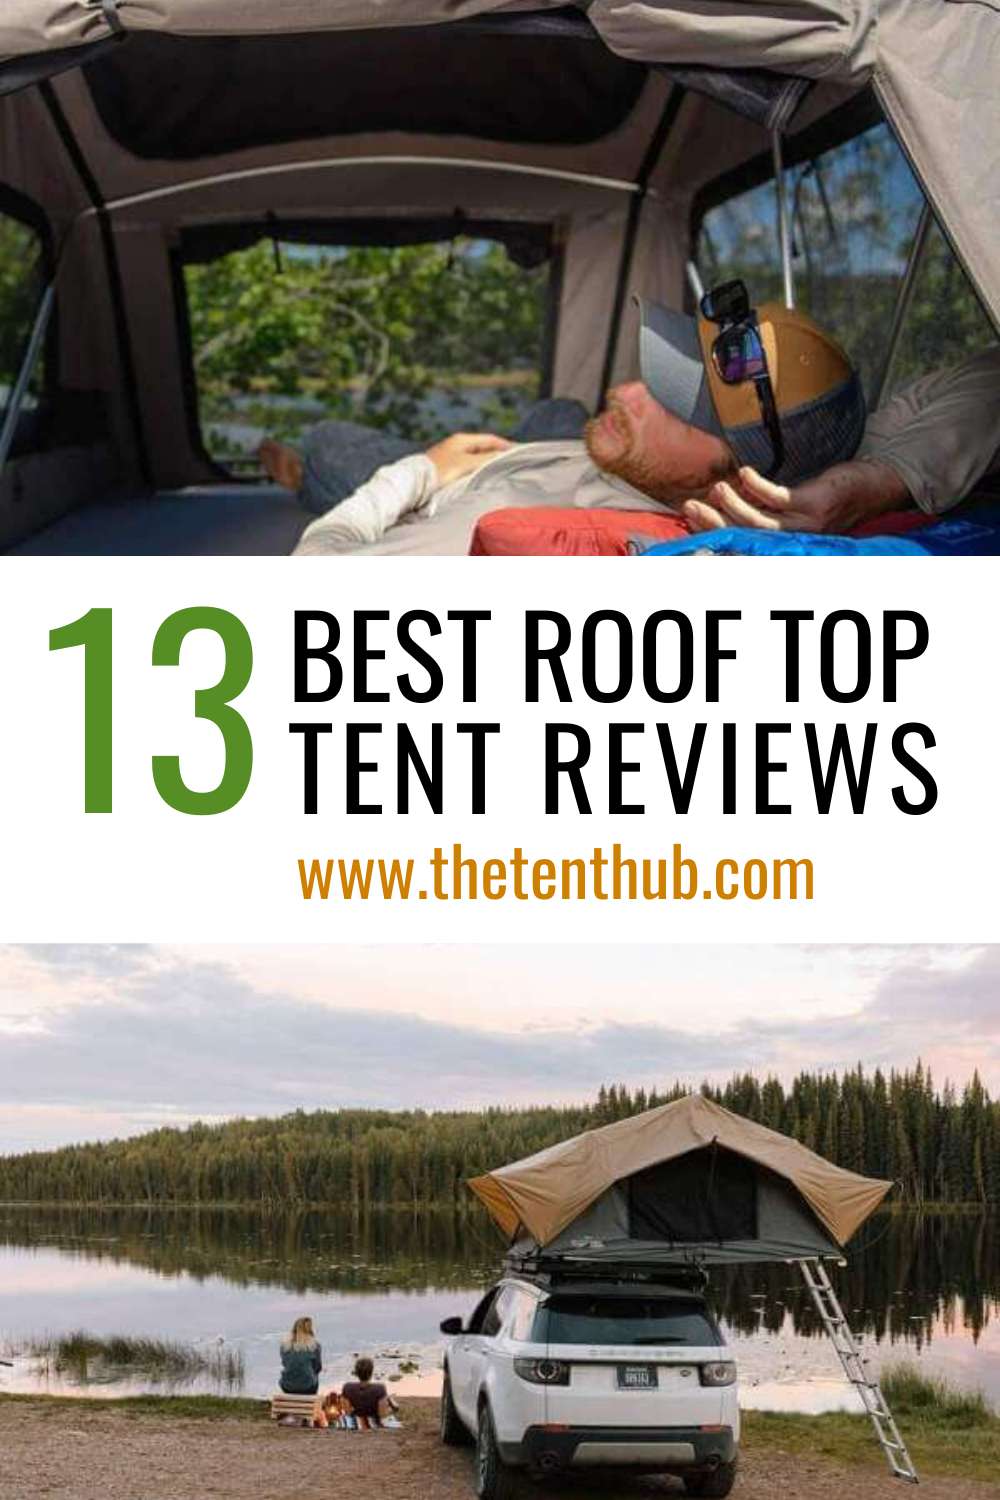 13 Best Roof Top Tent Reviews Roof Top Tent Rooftop Tent Camping Tent Reviews